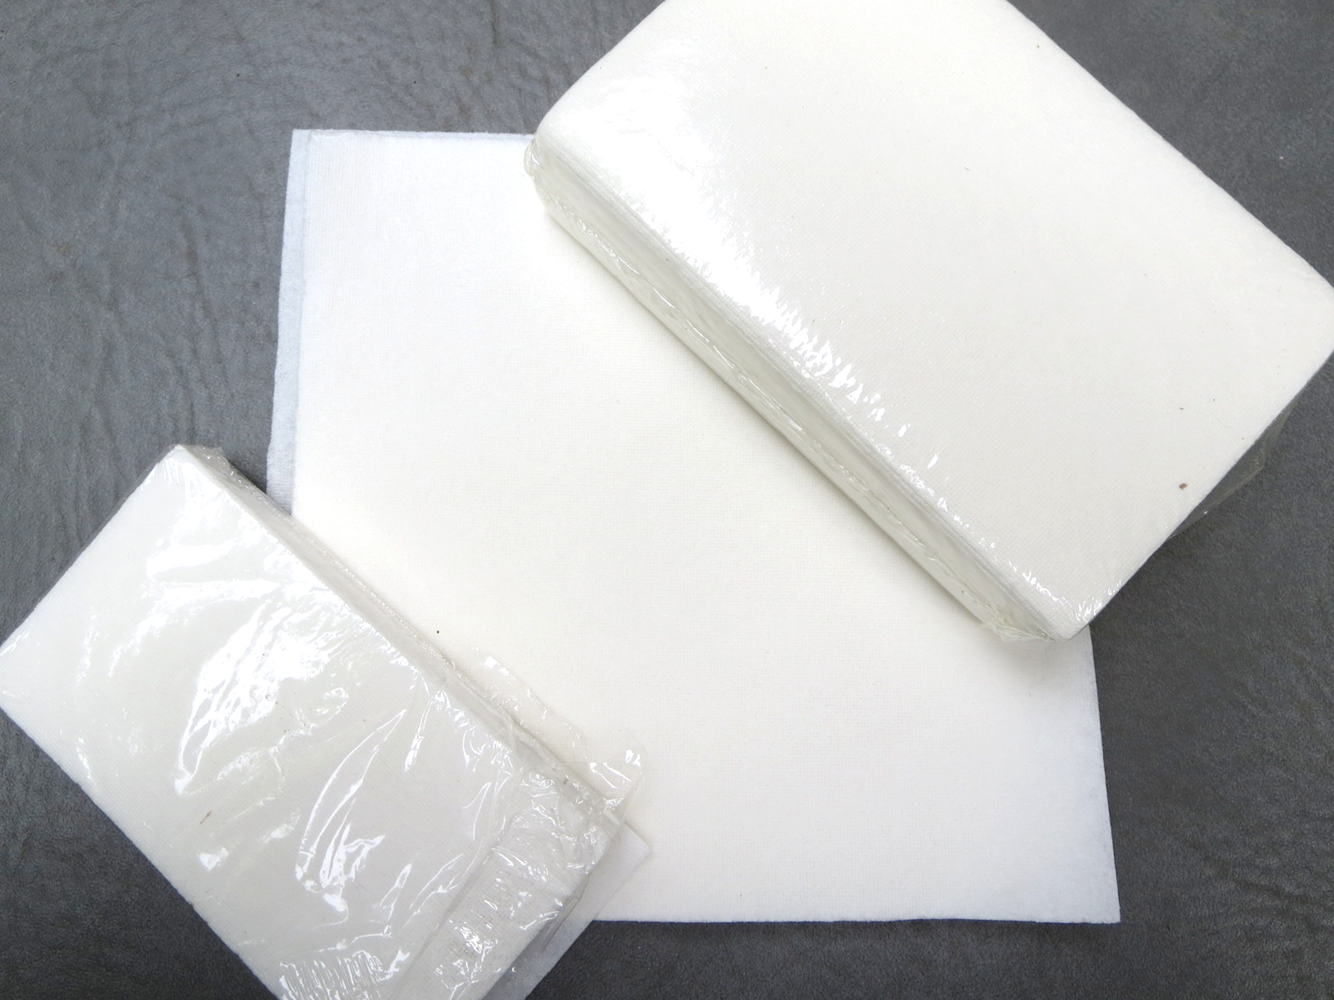 #02-01282CG24 DriMop® Medical Liquid Absorber/Fluid Solidifier Laminated Paper Sheets - 6` x 10`